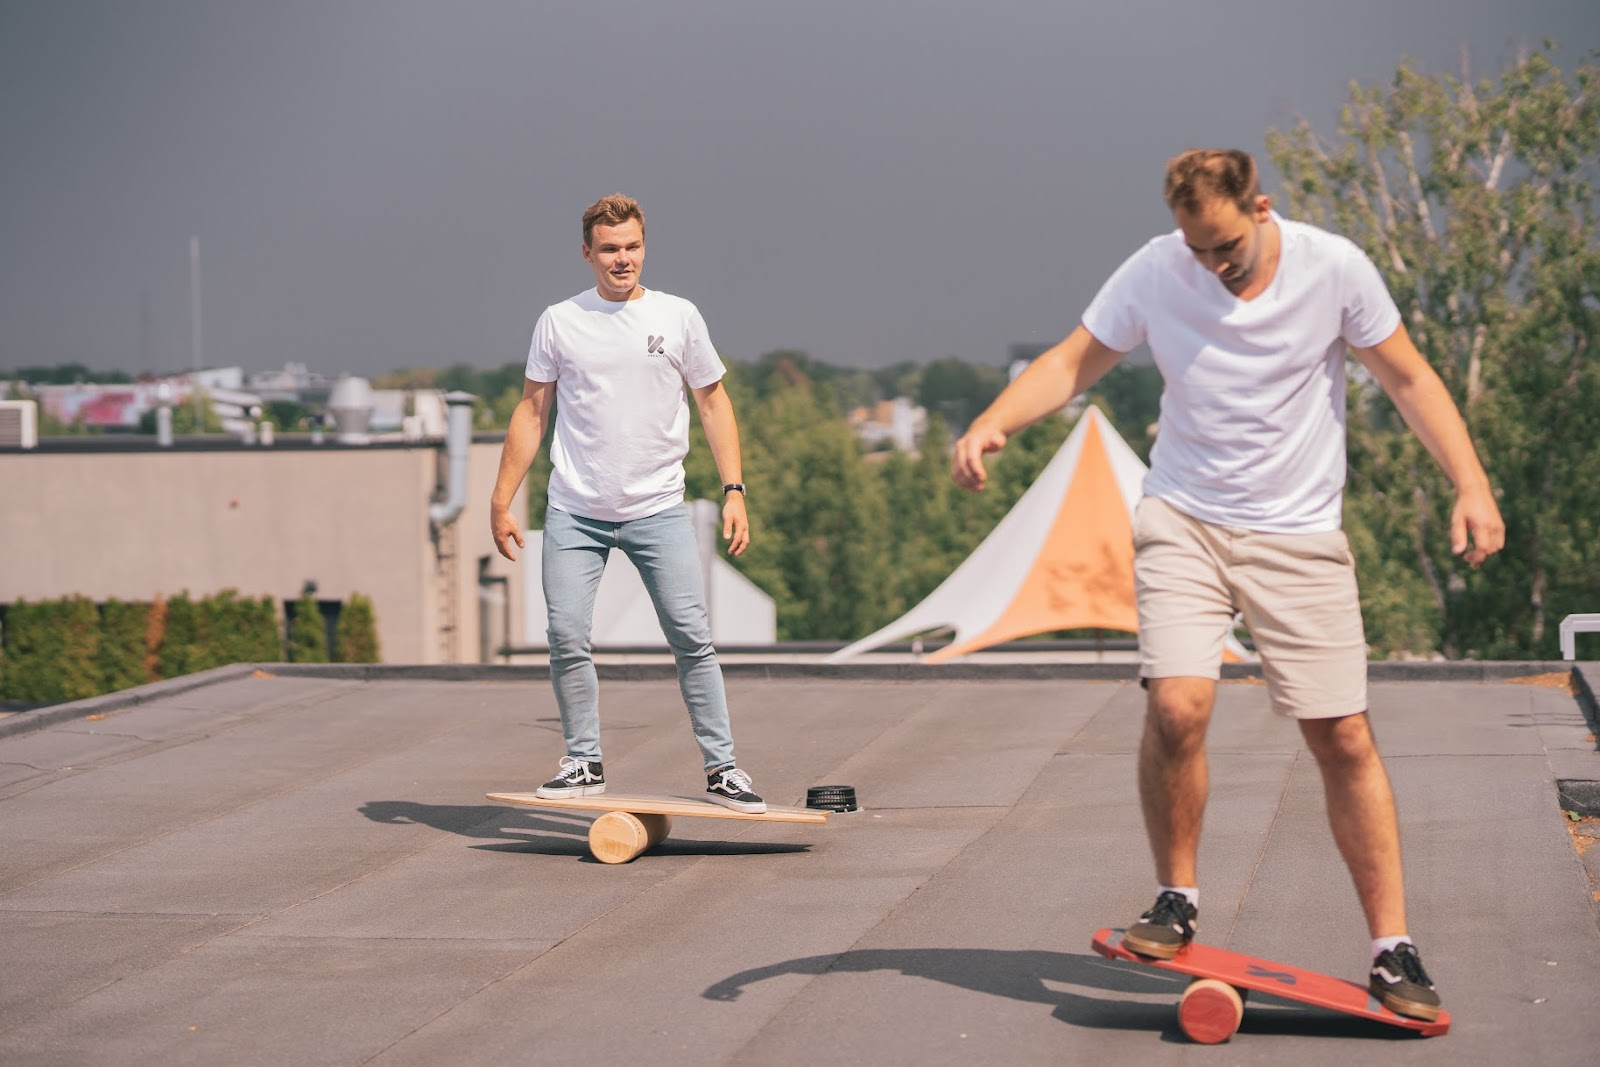 Two people using balance boards on a rooftop